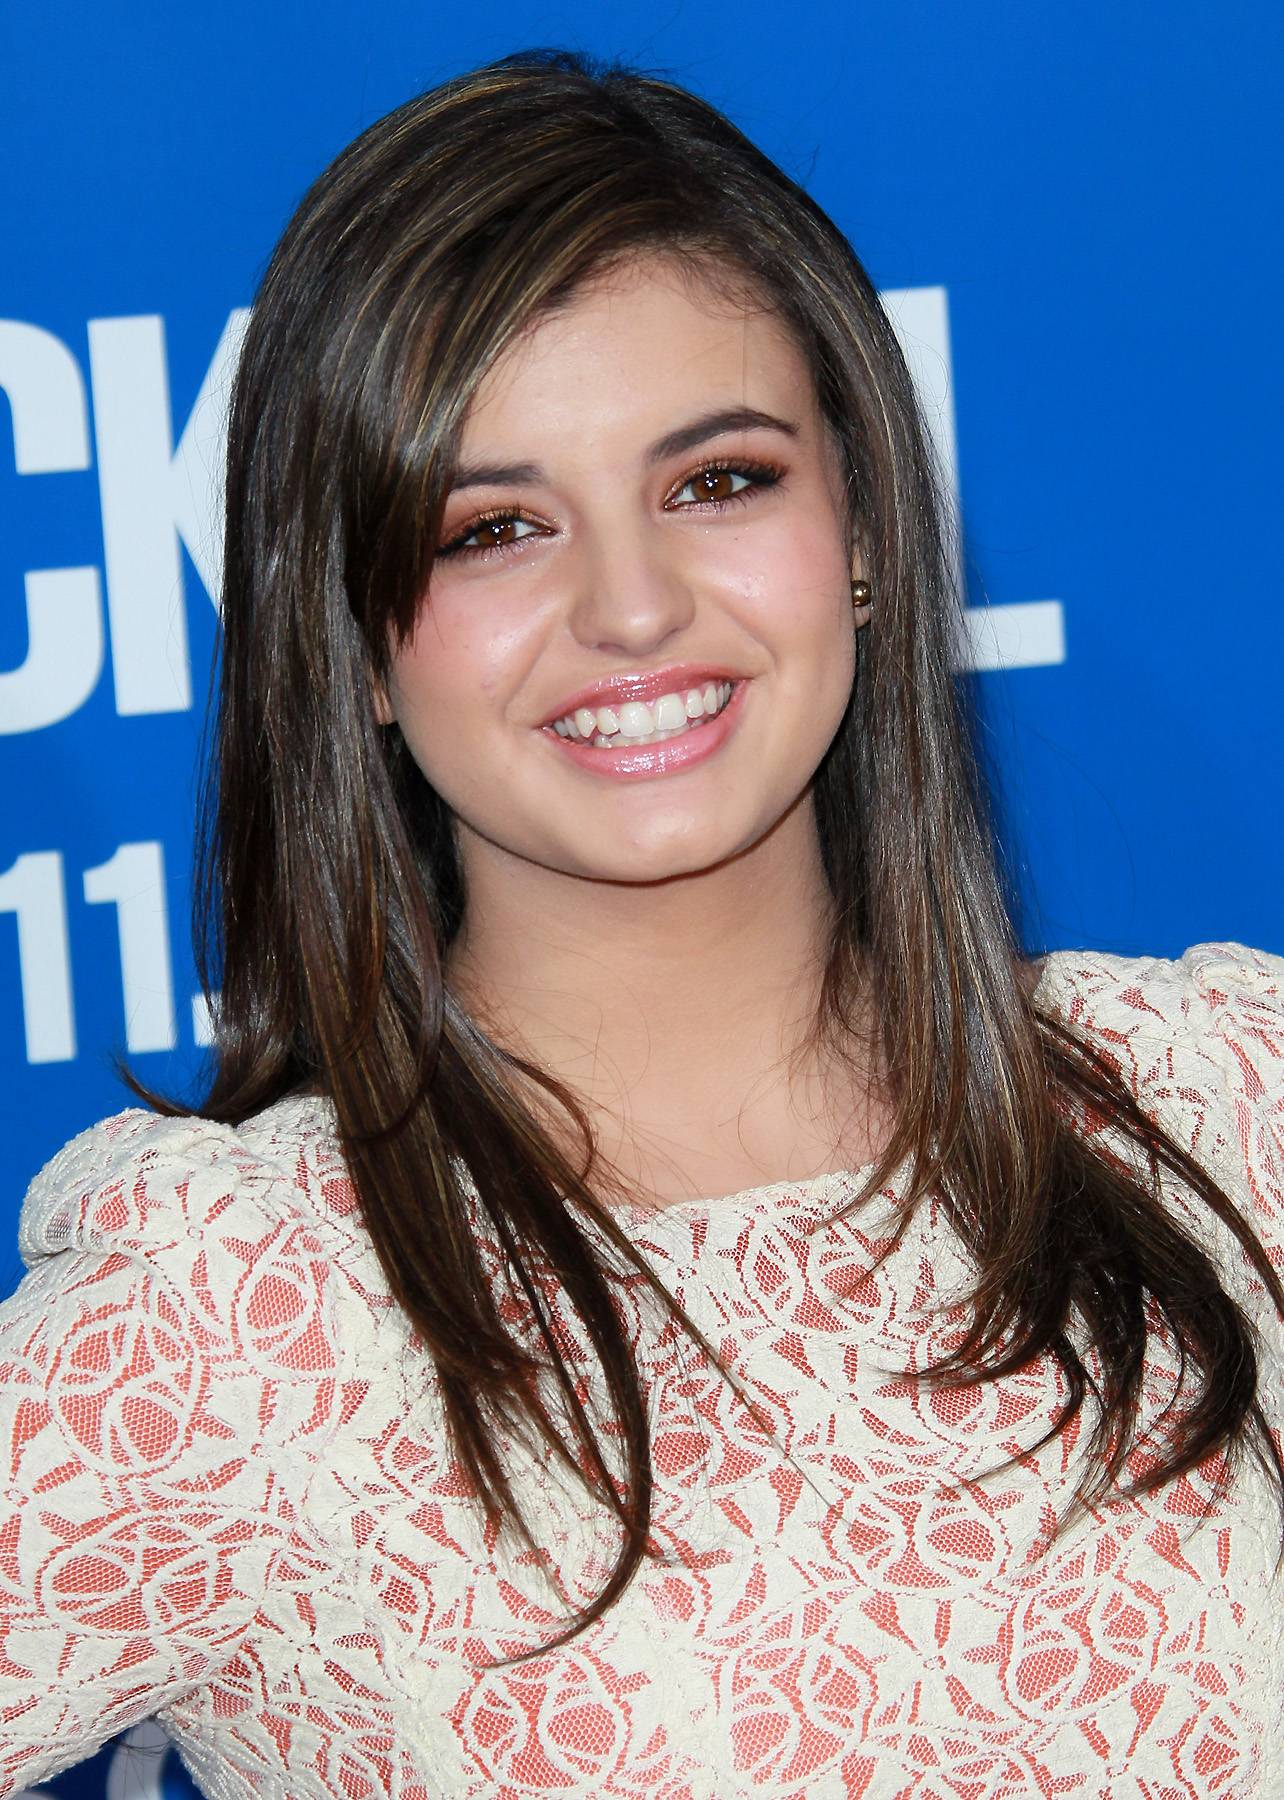 """Rebecca Black - Rebecca Black's """"Friday"""" was uploaded to YouTube in 2010 and went viral in 2011?mostly because it was so hilariously awful. Still, she's parlayed her fame into some big opportunities: hosting an online award show for MTV, appearing in a Katy Perry video and performing with her on tour, and recording her own forthcoming new album. (Photo: David Livingston/Getty Images)"""